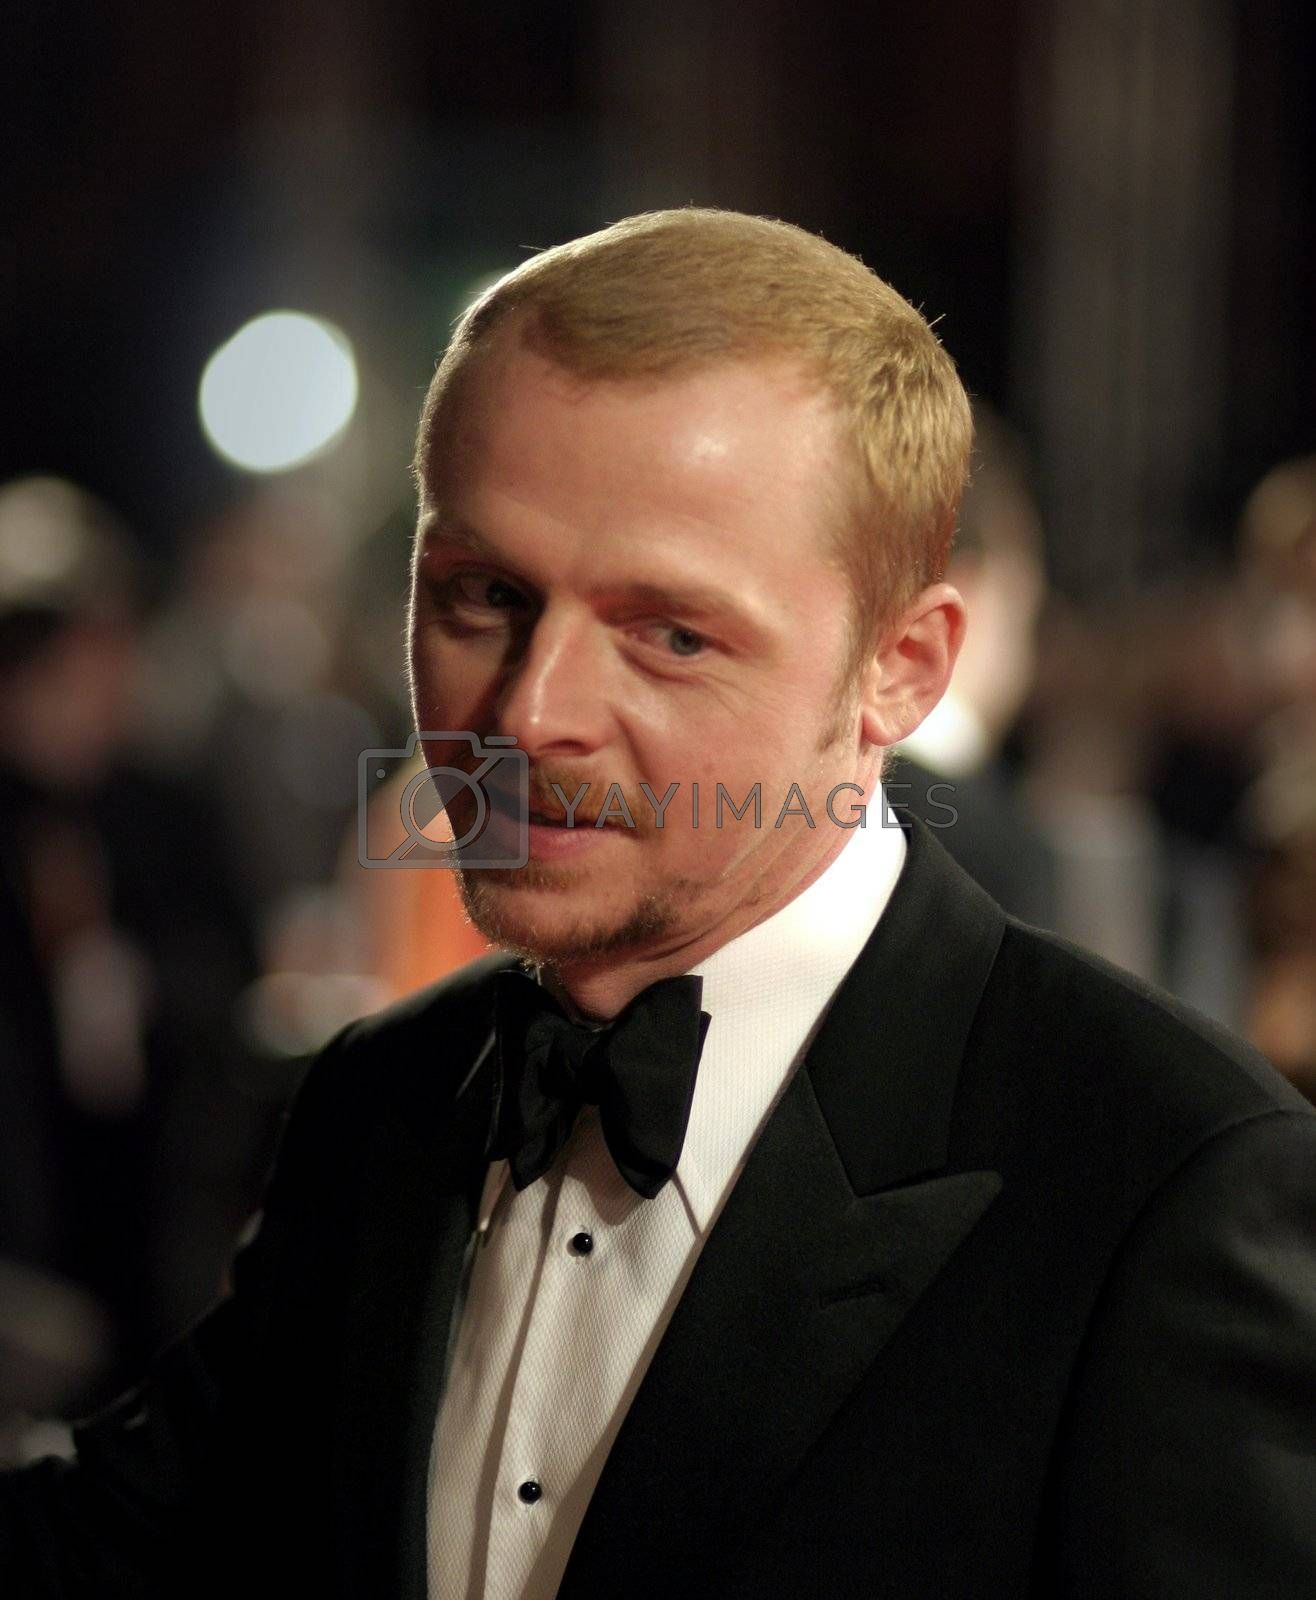 Actor Simon Pegg arrives at the Orange British Academy Film Awards in London's Royal Opera House on February 11